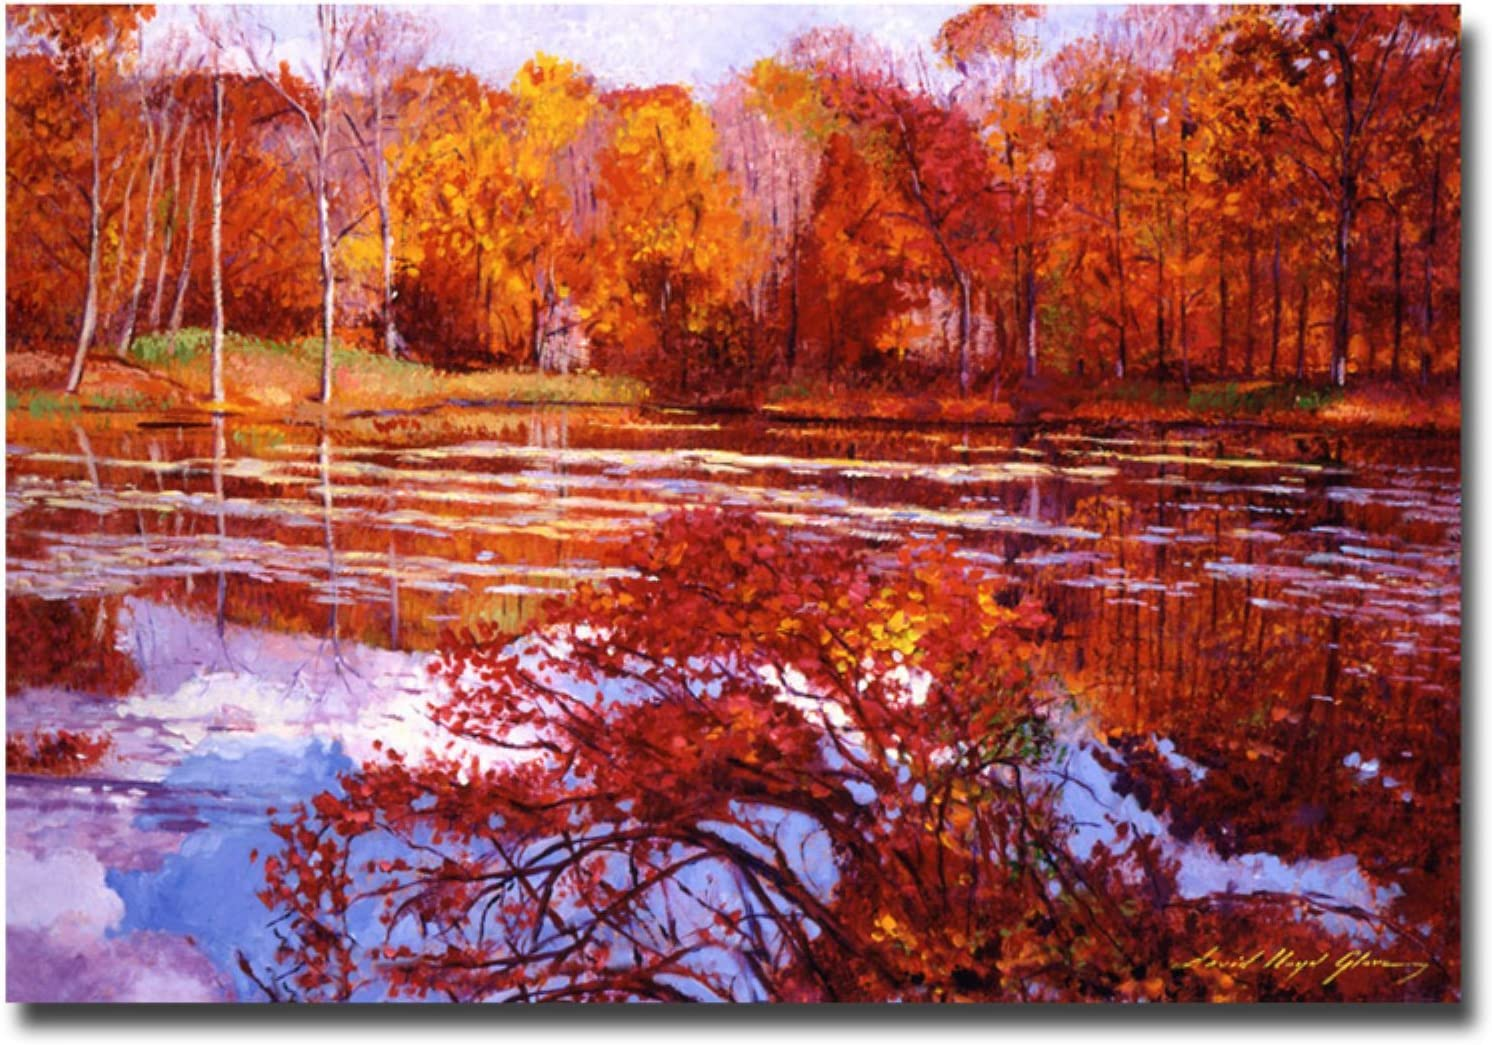 Amazon Com Scarlet Maples By David Lloyd Glover 30x47 Inch Canvas Wall Art Prints Posters Prints